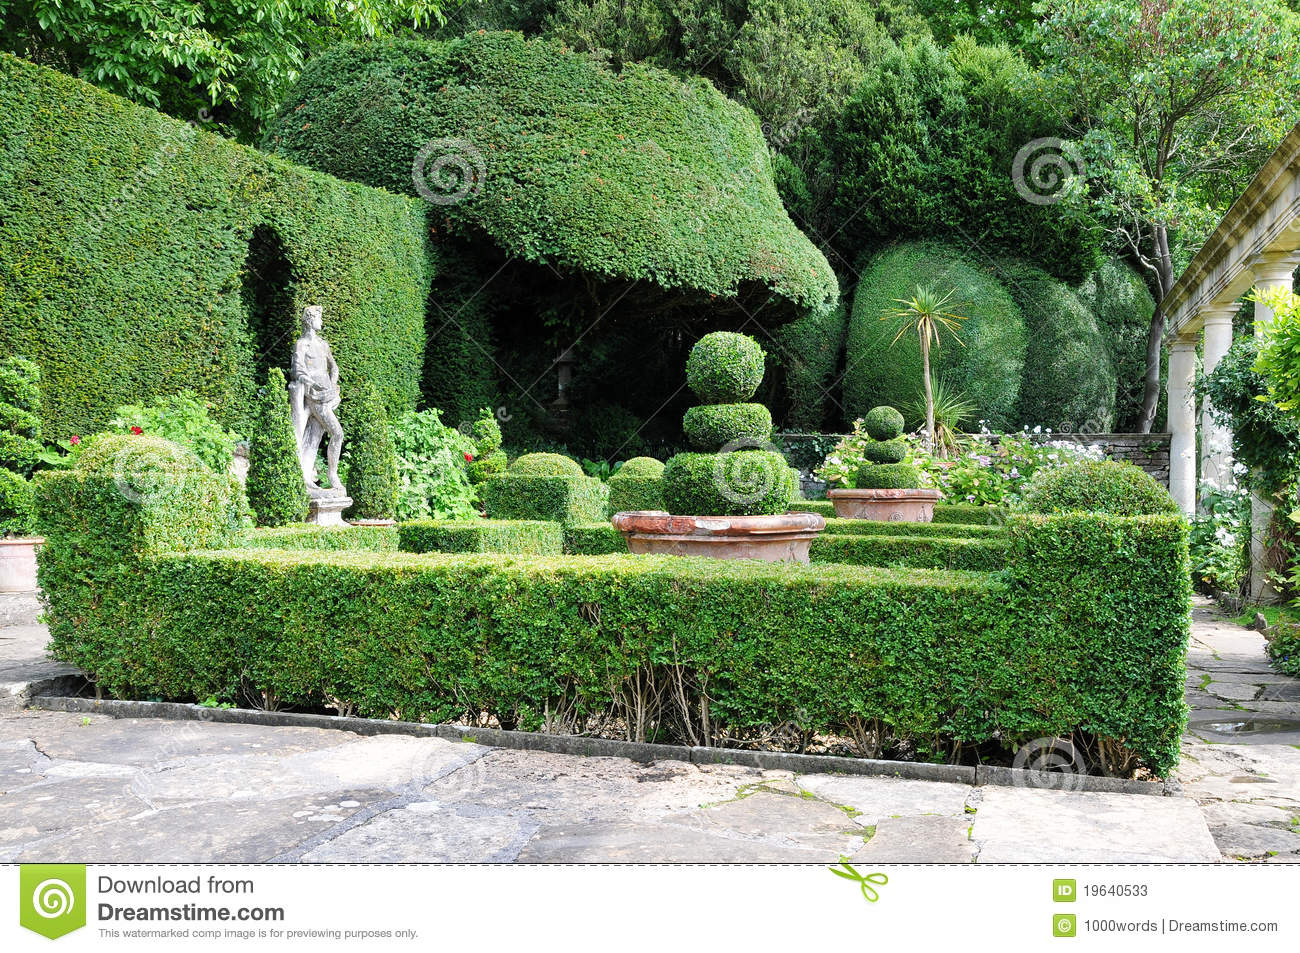 Topiary In A Formal Garden Stock Photos - Image: 19640533